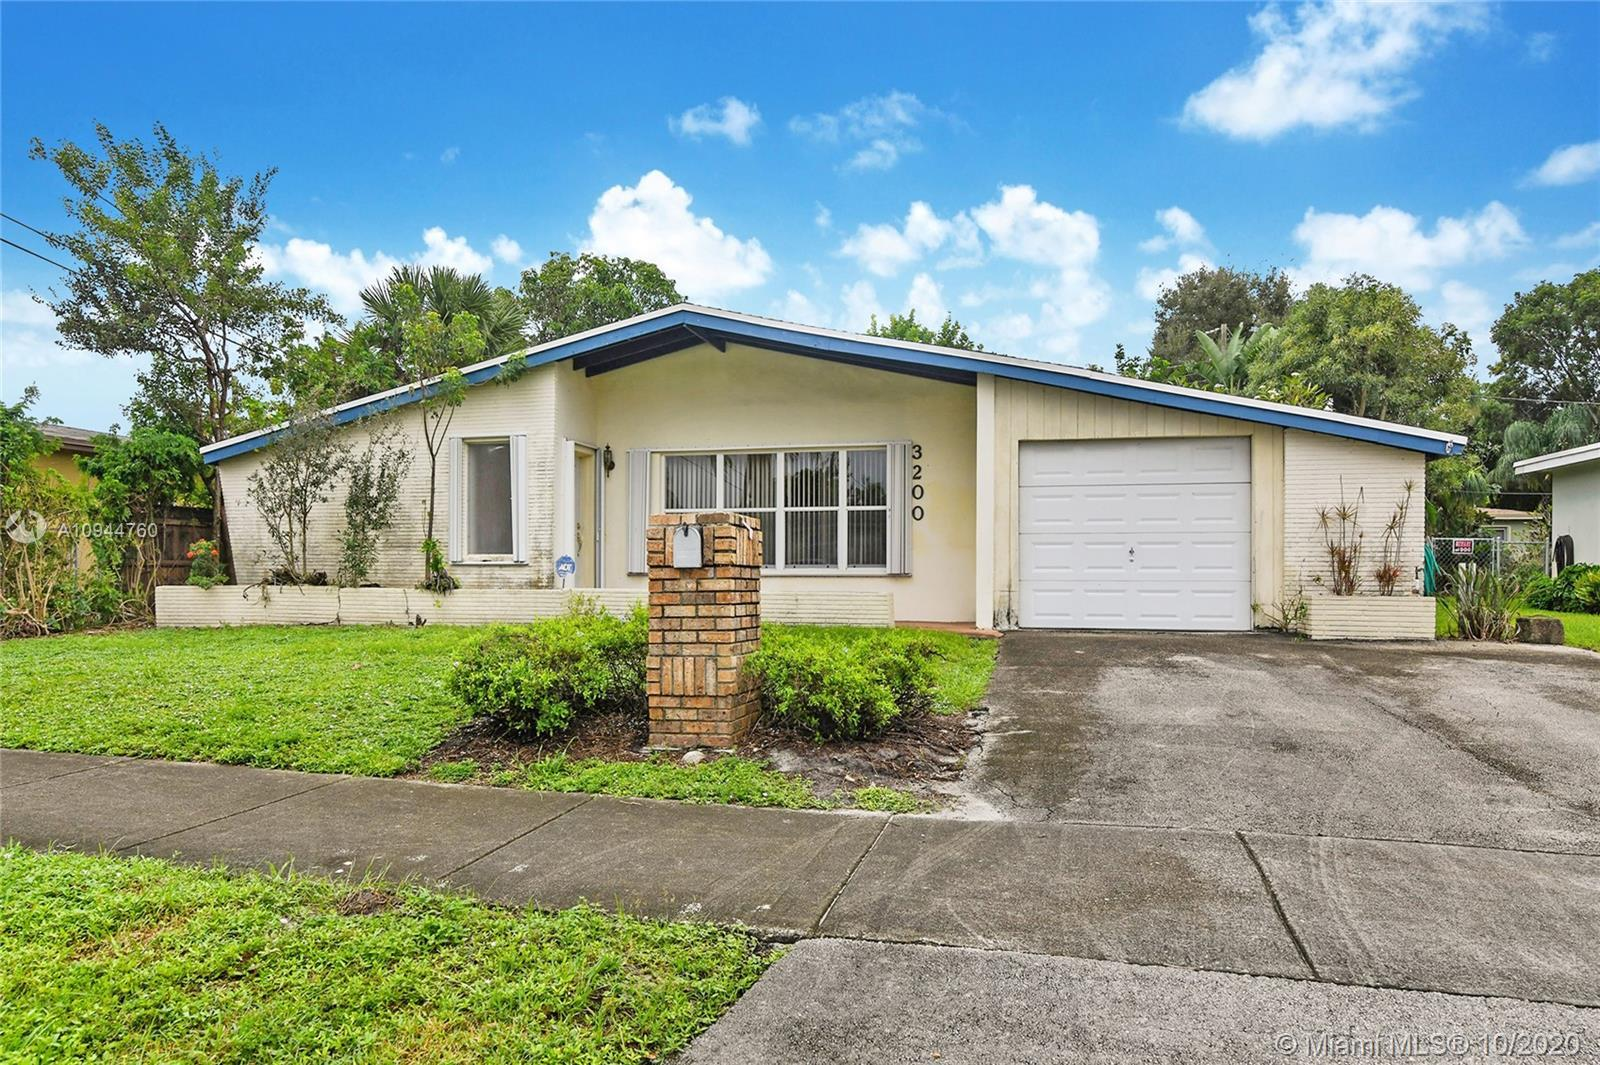 Great opportunity to purchase a 4 Bedroom 2 Bath family  home in popular Riverland Village. The home